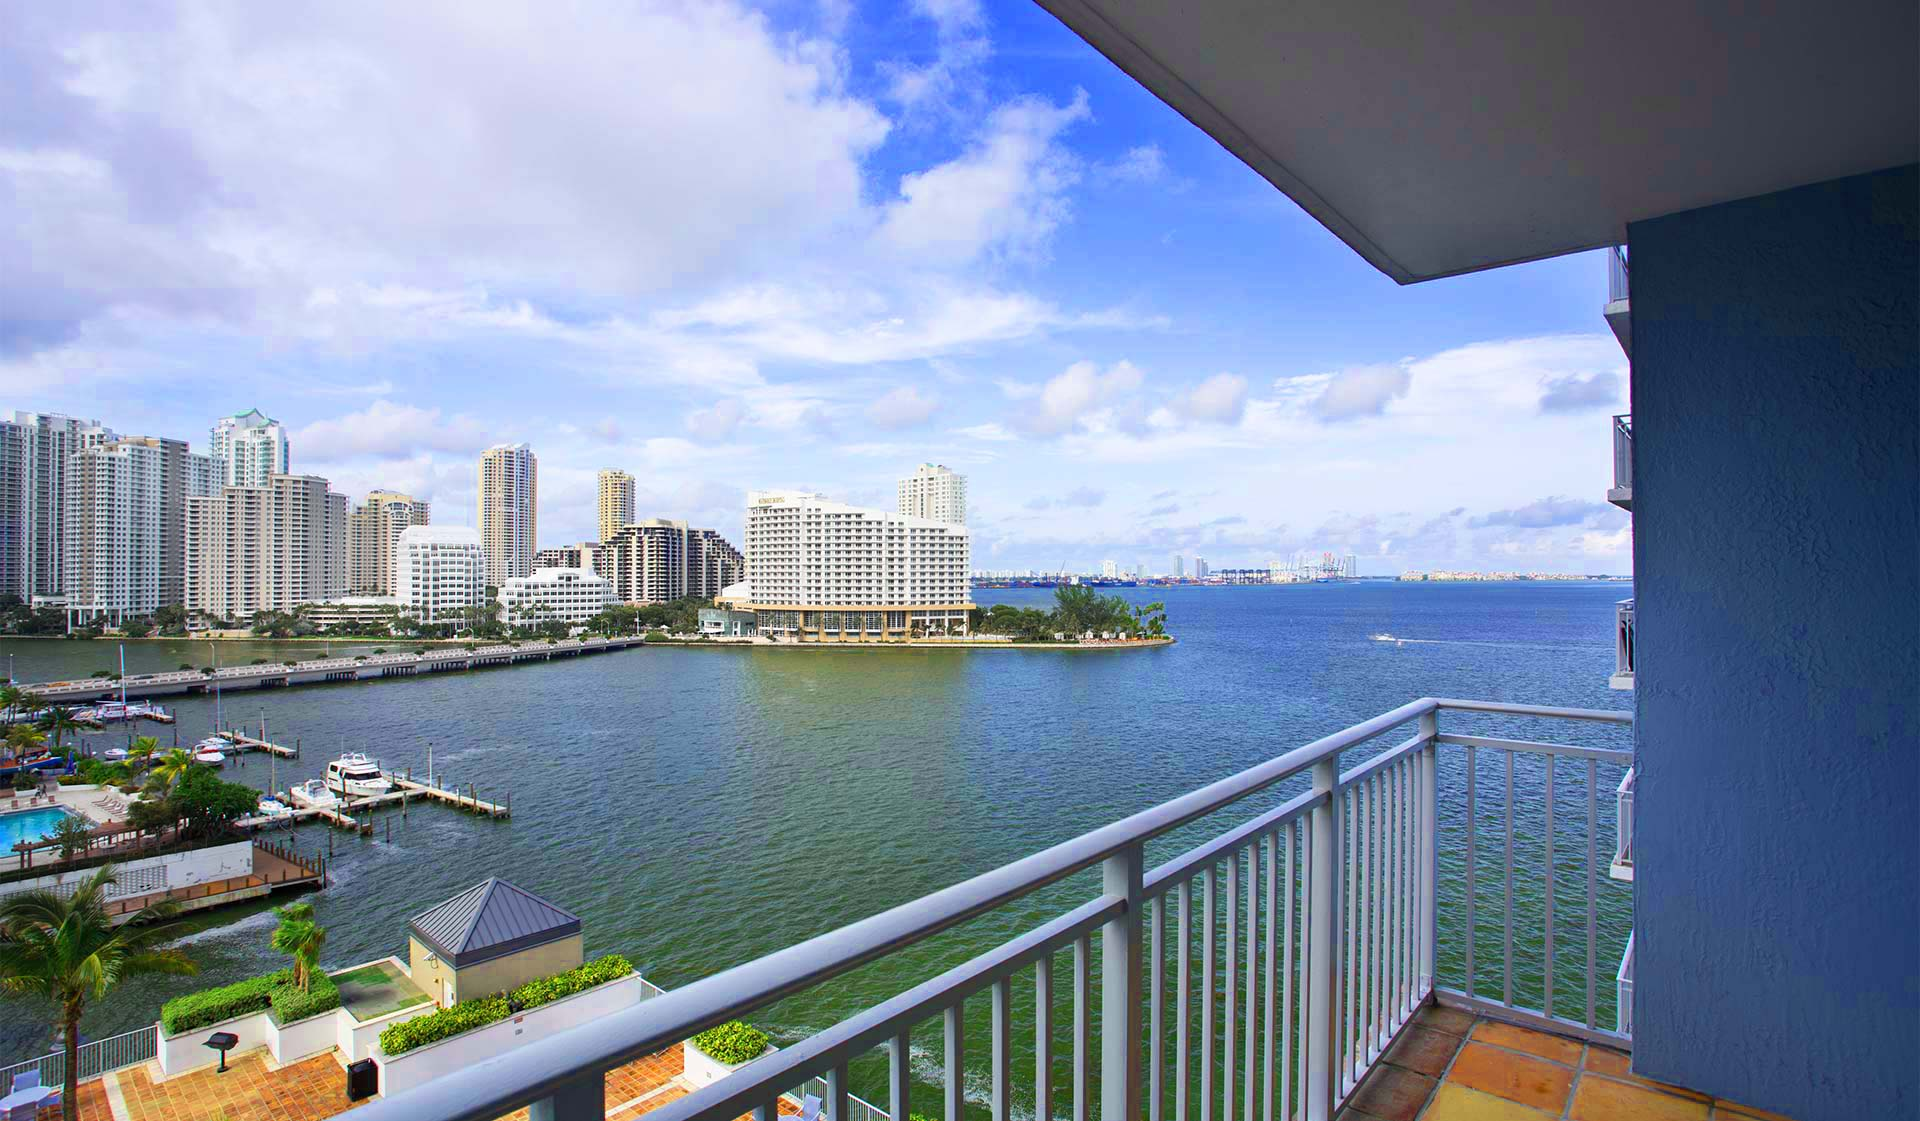 Yacht Club Apartments - Miami, FL - Deck View